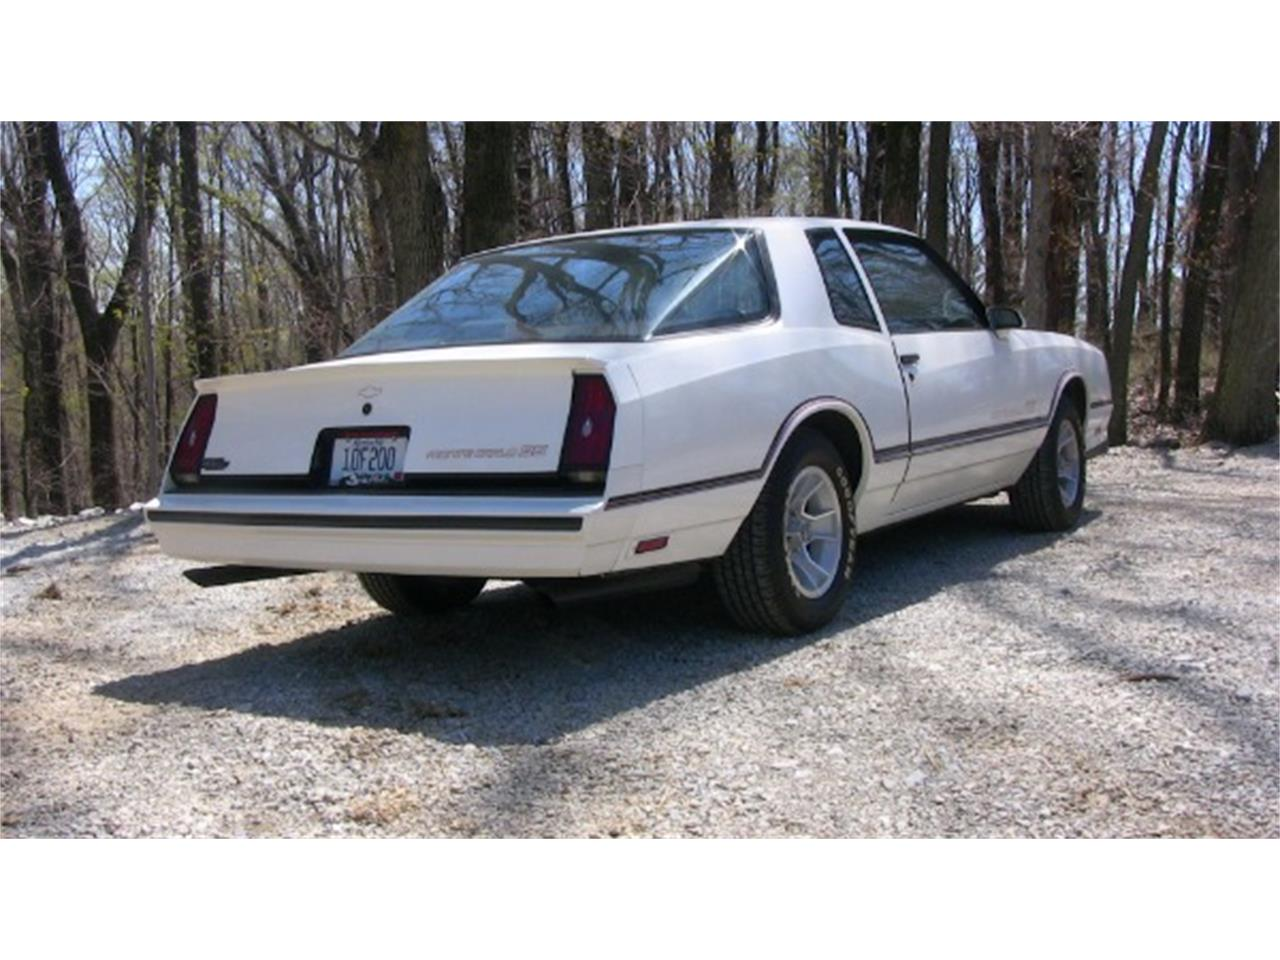 1986 Chevrolet Monte Carlo (CC-1272509) for sale in Cornelius, North Carolina